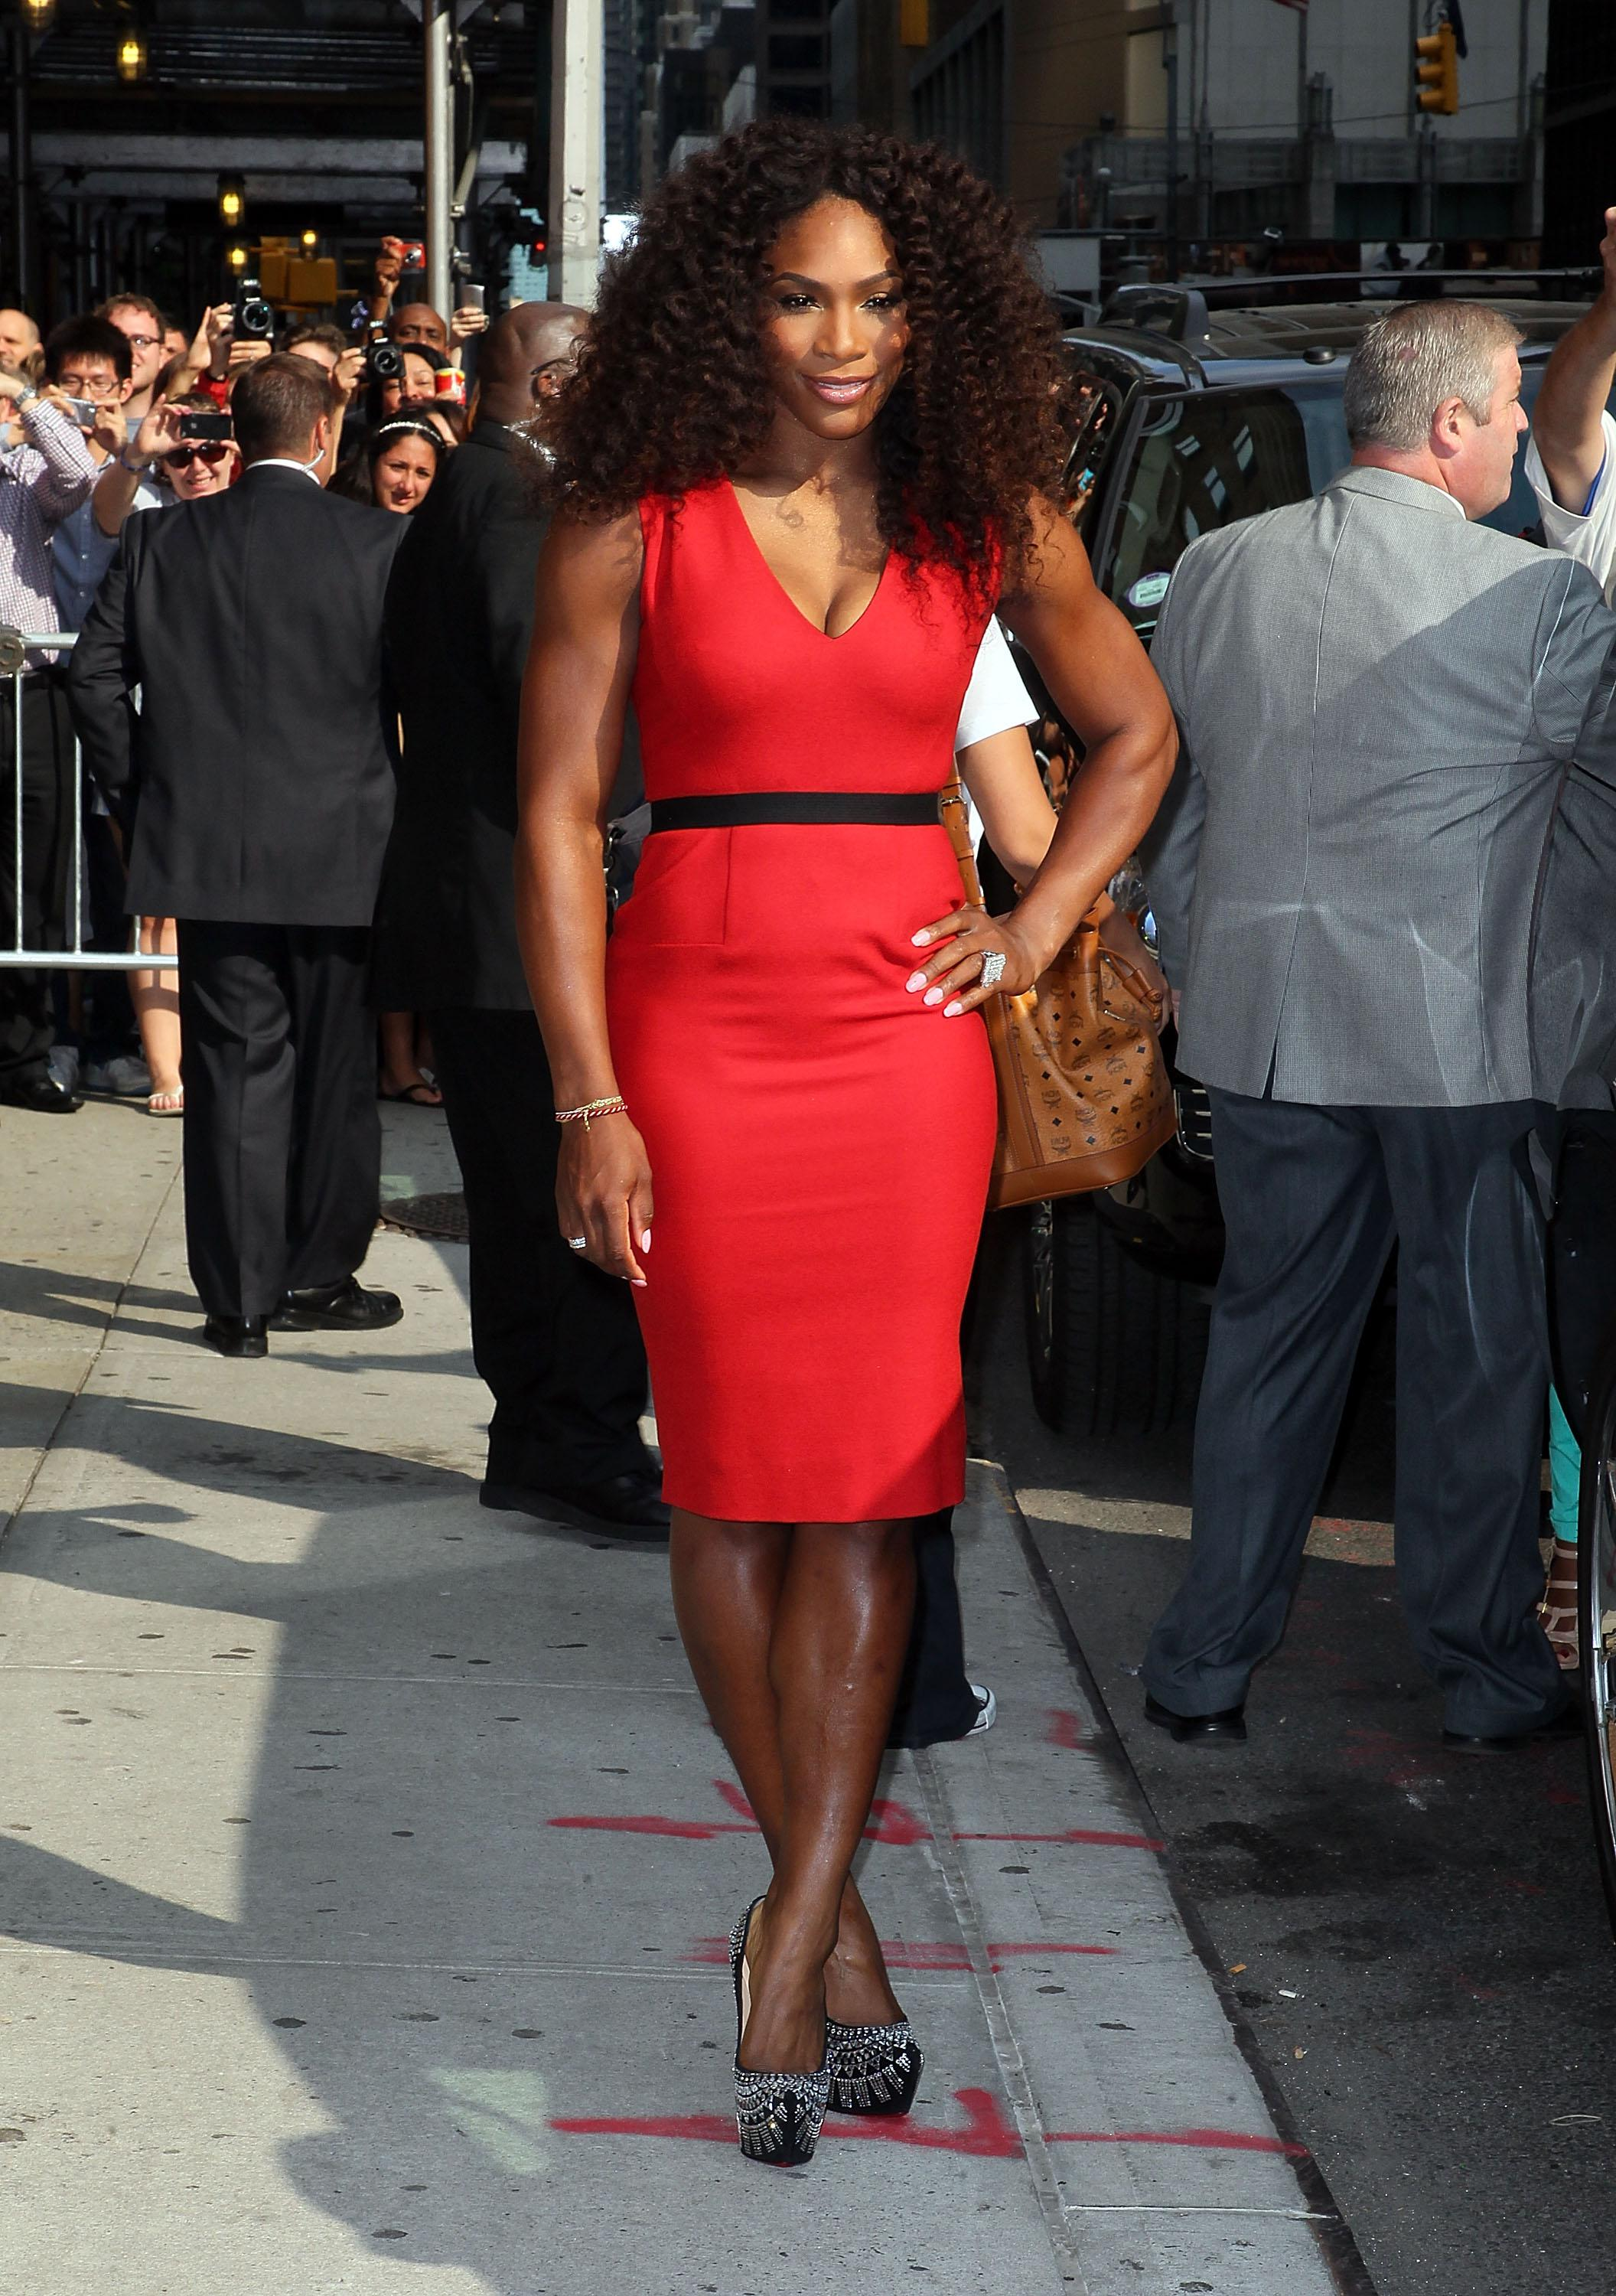 Celebrities Visit 'Late Show With David Letterman' - August 22, 2012